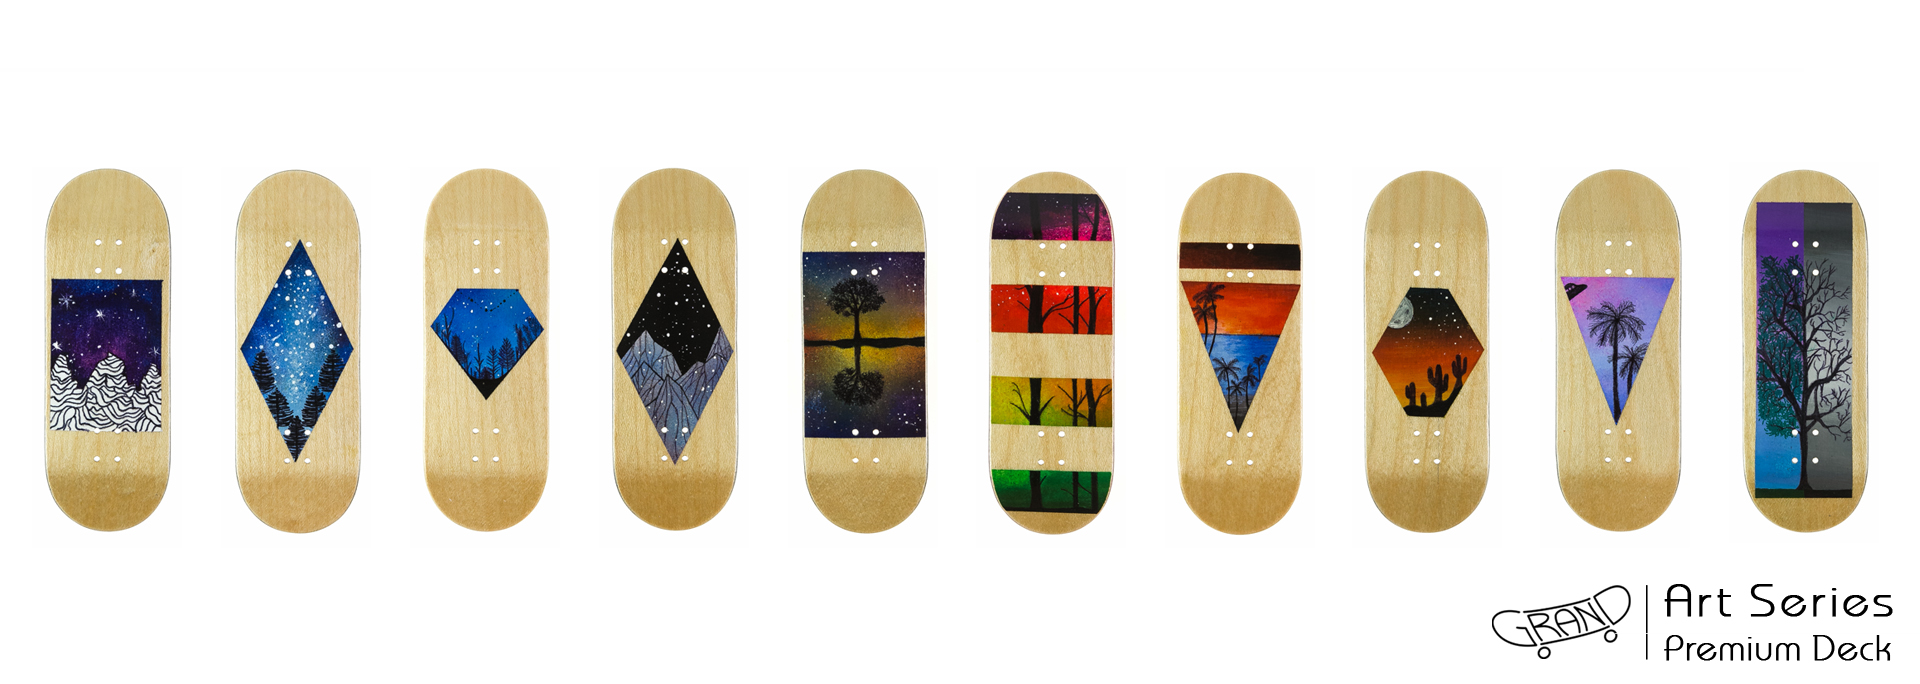 Grand Fingers Premium Decks Art Series 01